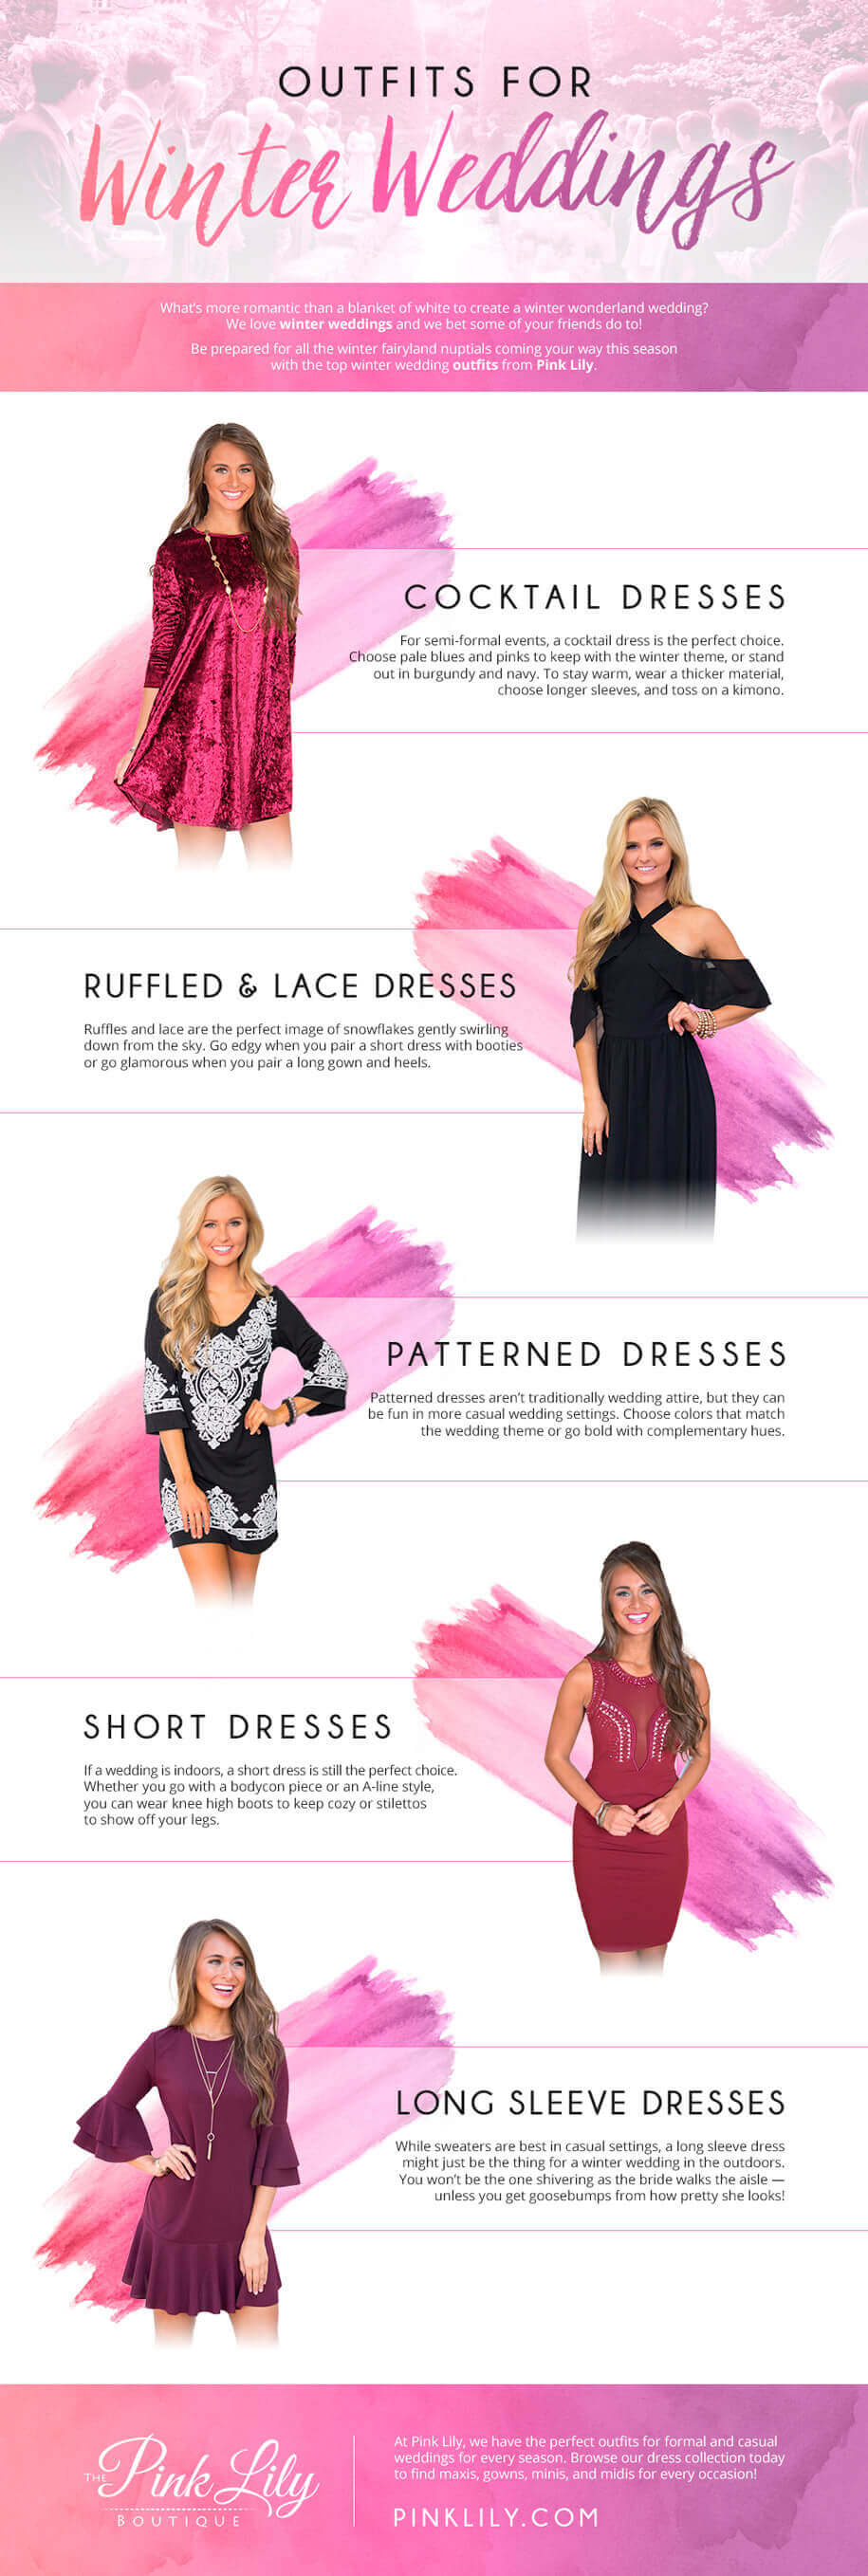 Winter Wedding Outfits Infographic